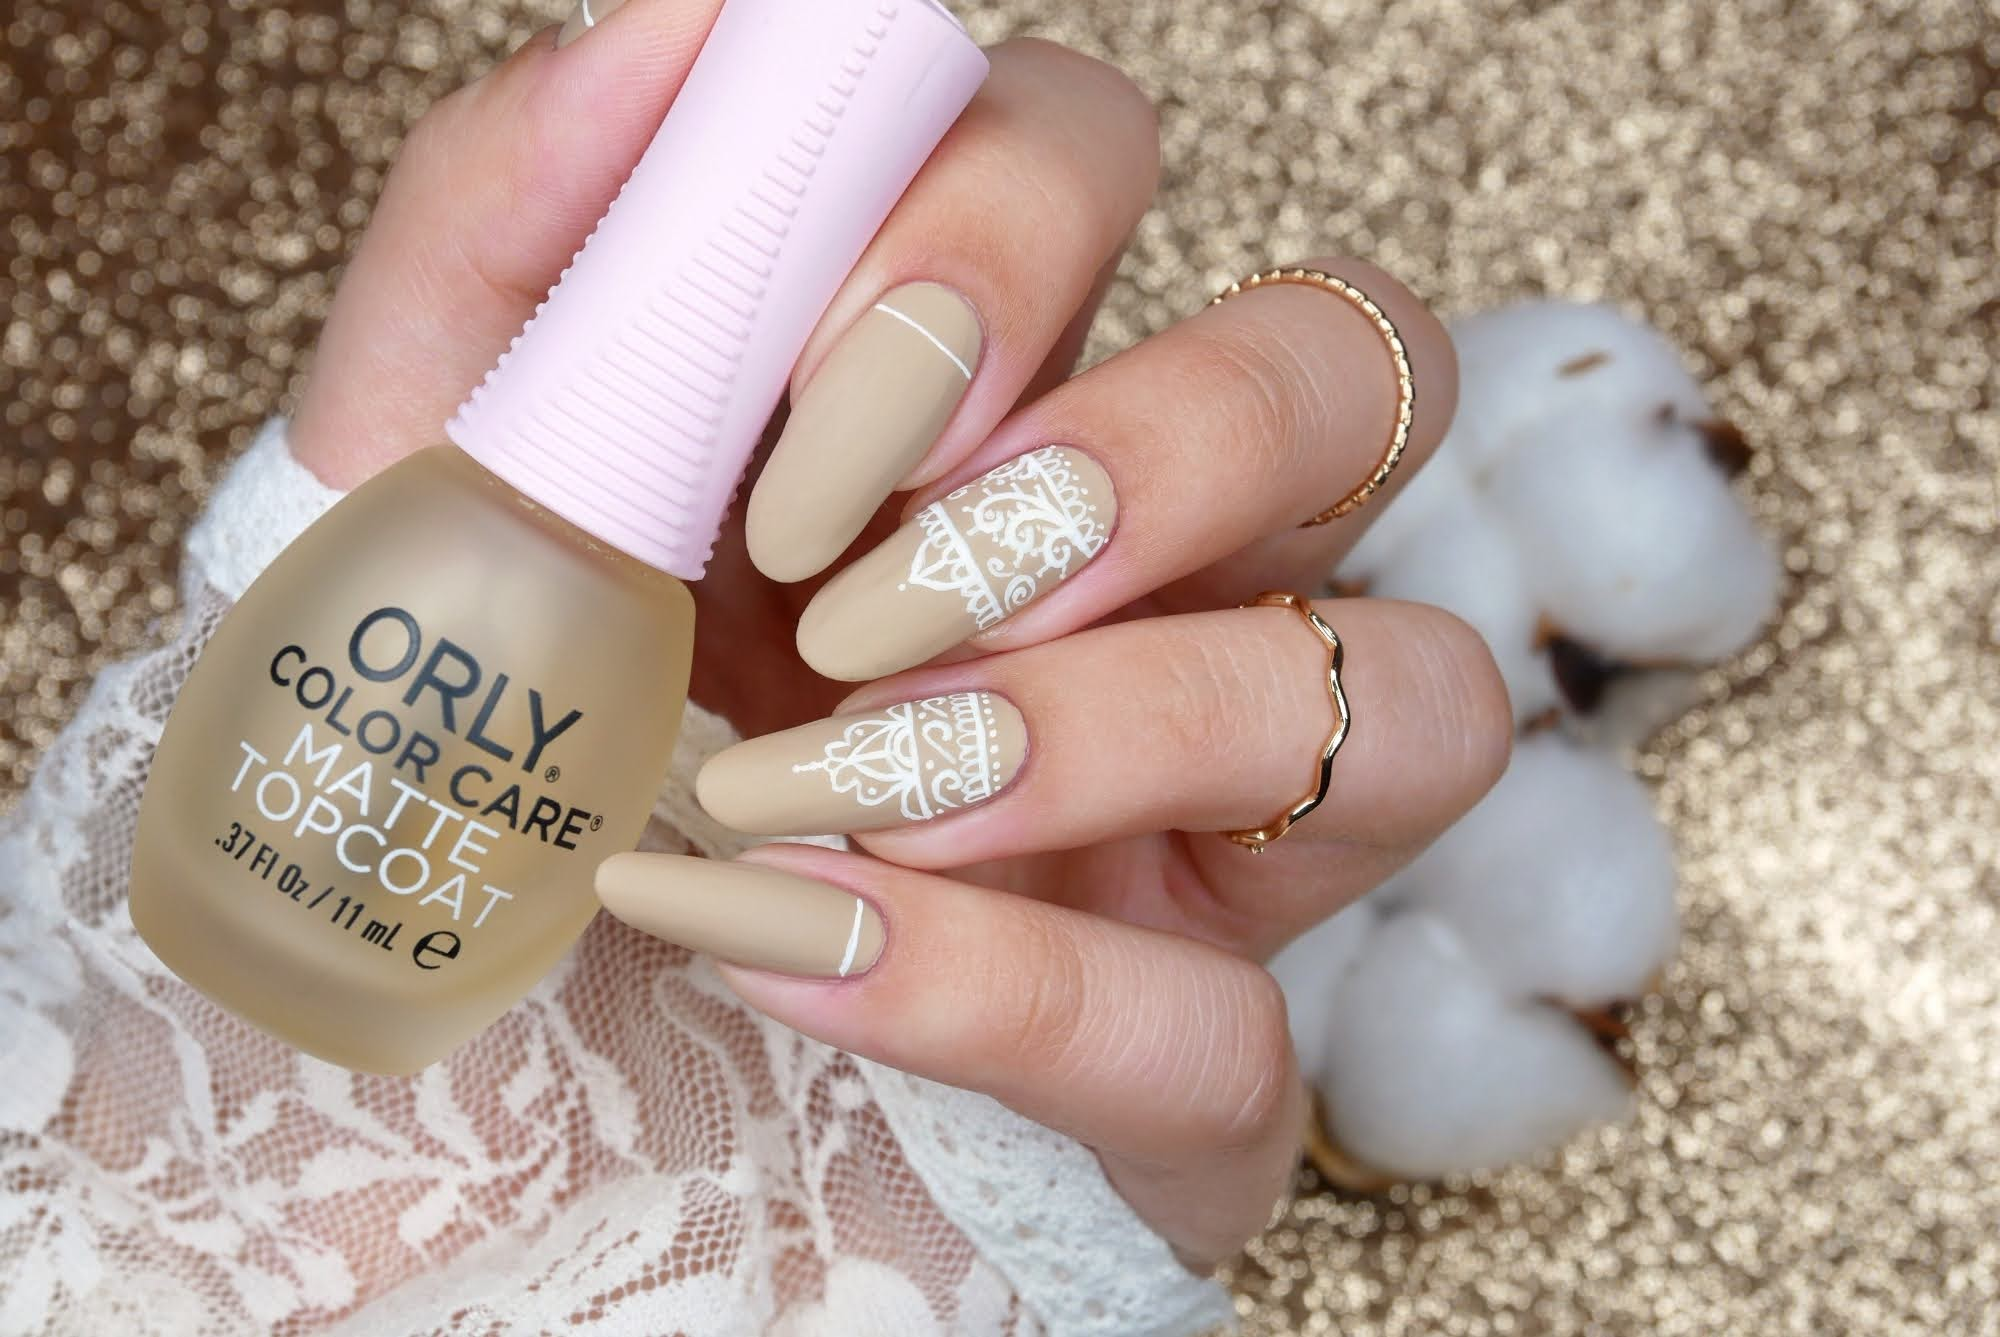 Top coat matowy Orly